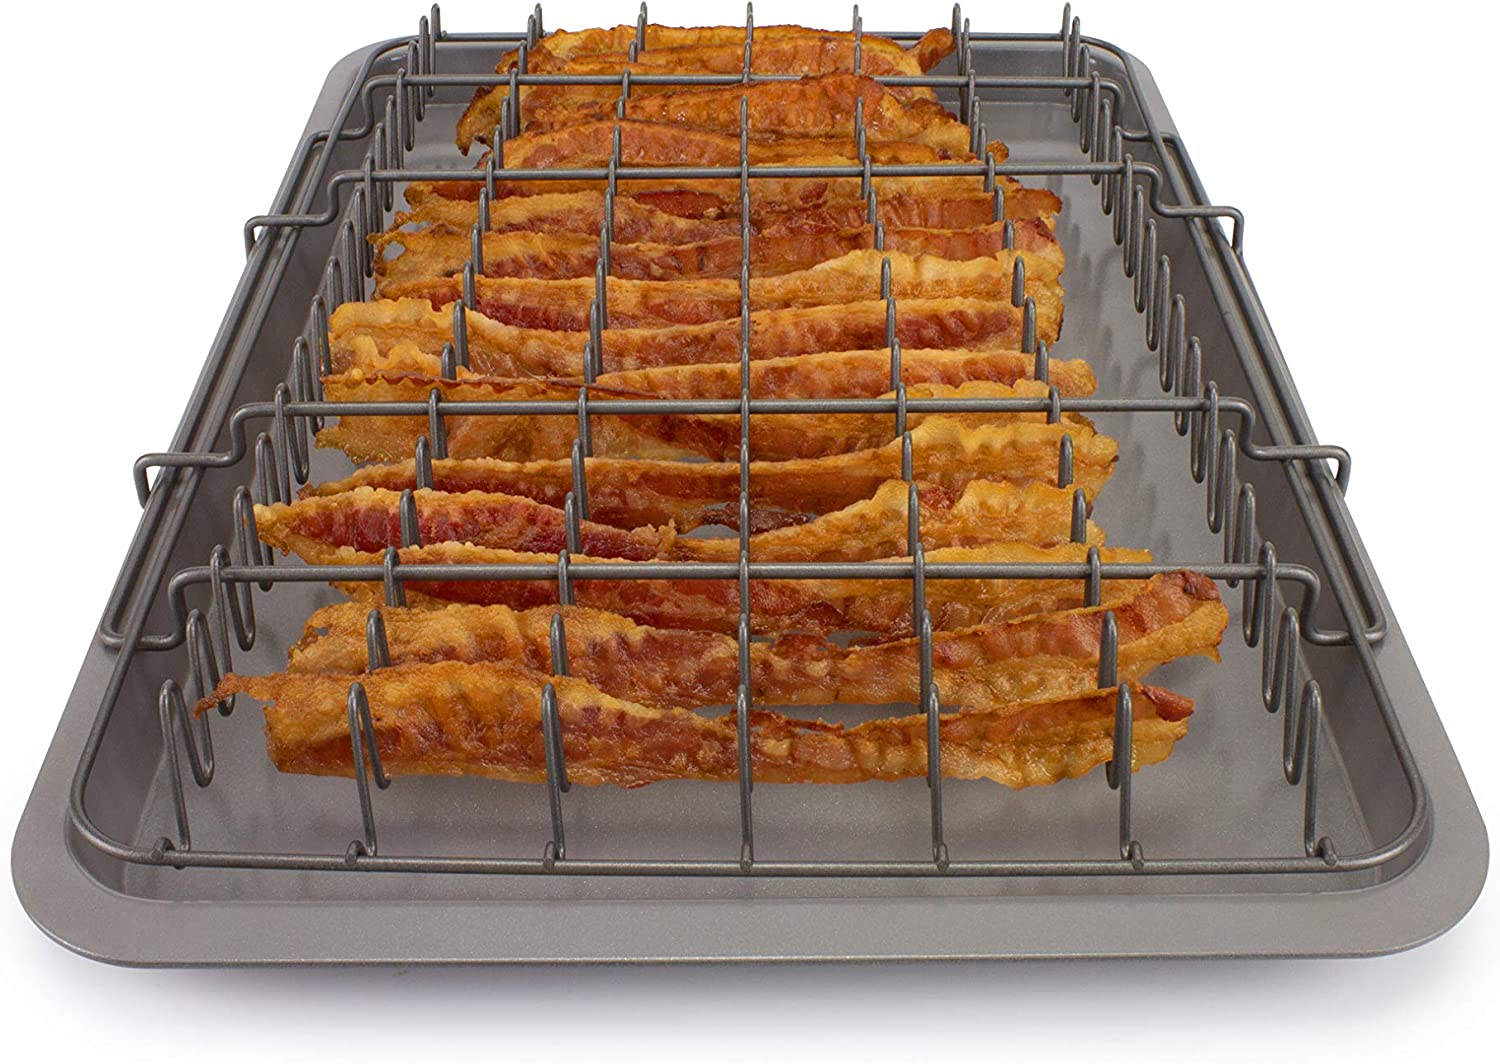 EaZy MealZ Bacon Rack & Tray Set XL Grey, Family Size for 2-5